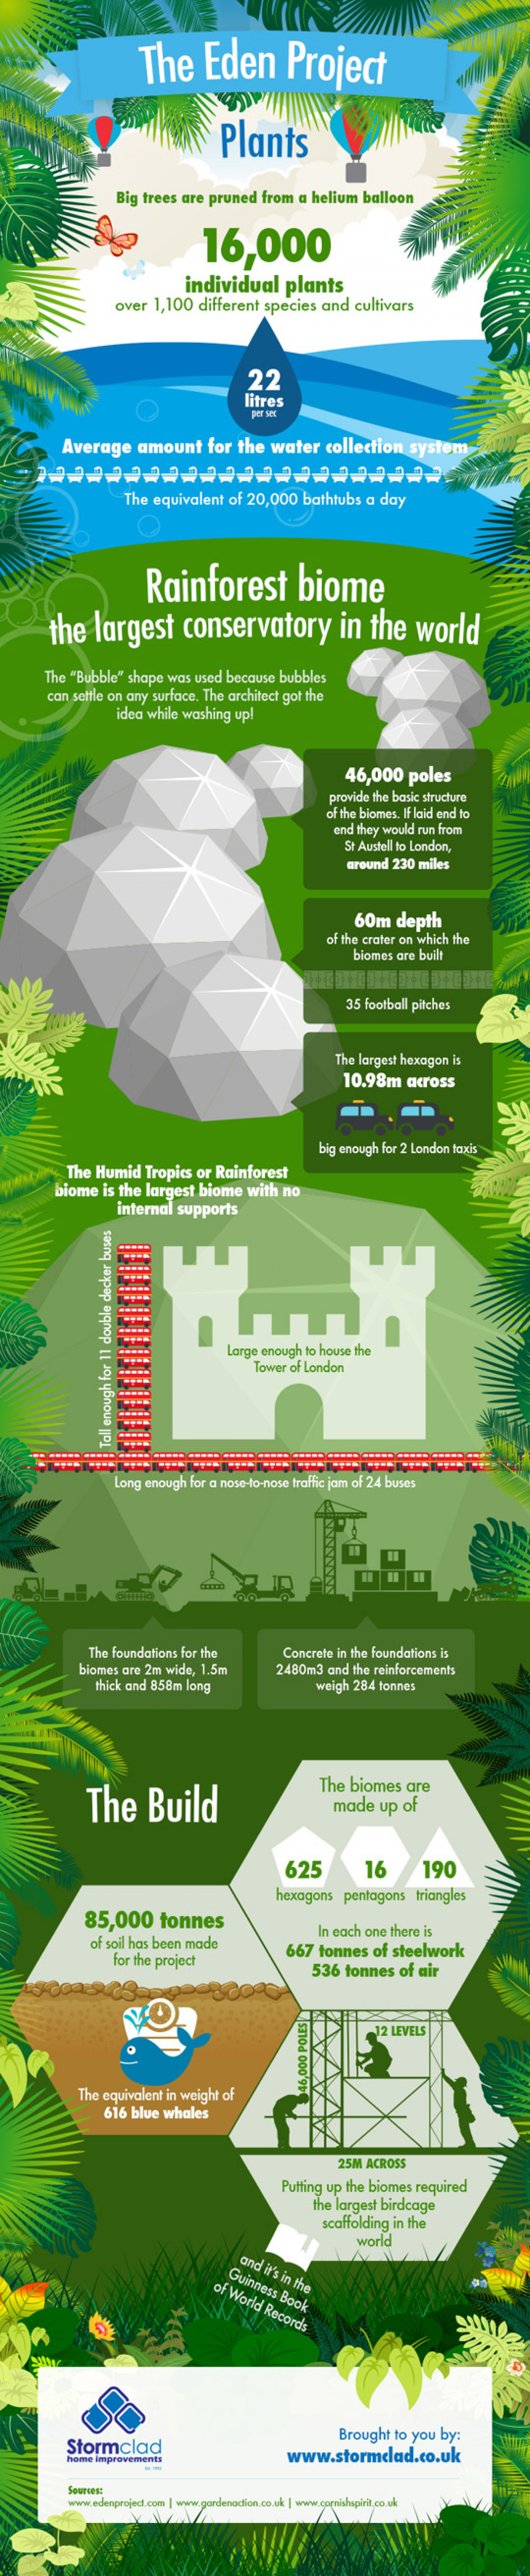 The largest conservatory in the world! The Eden Project! Infographic